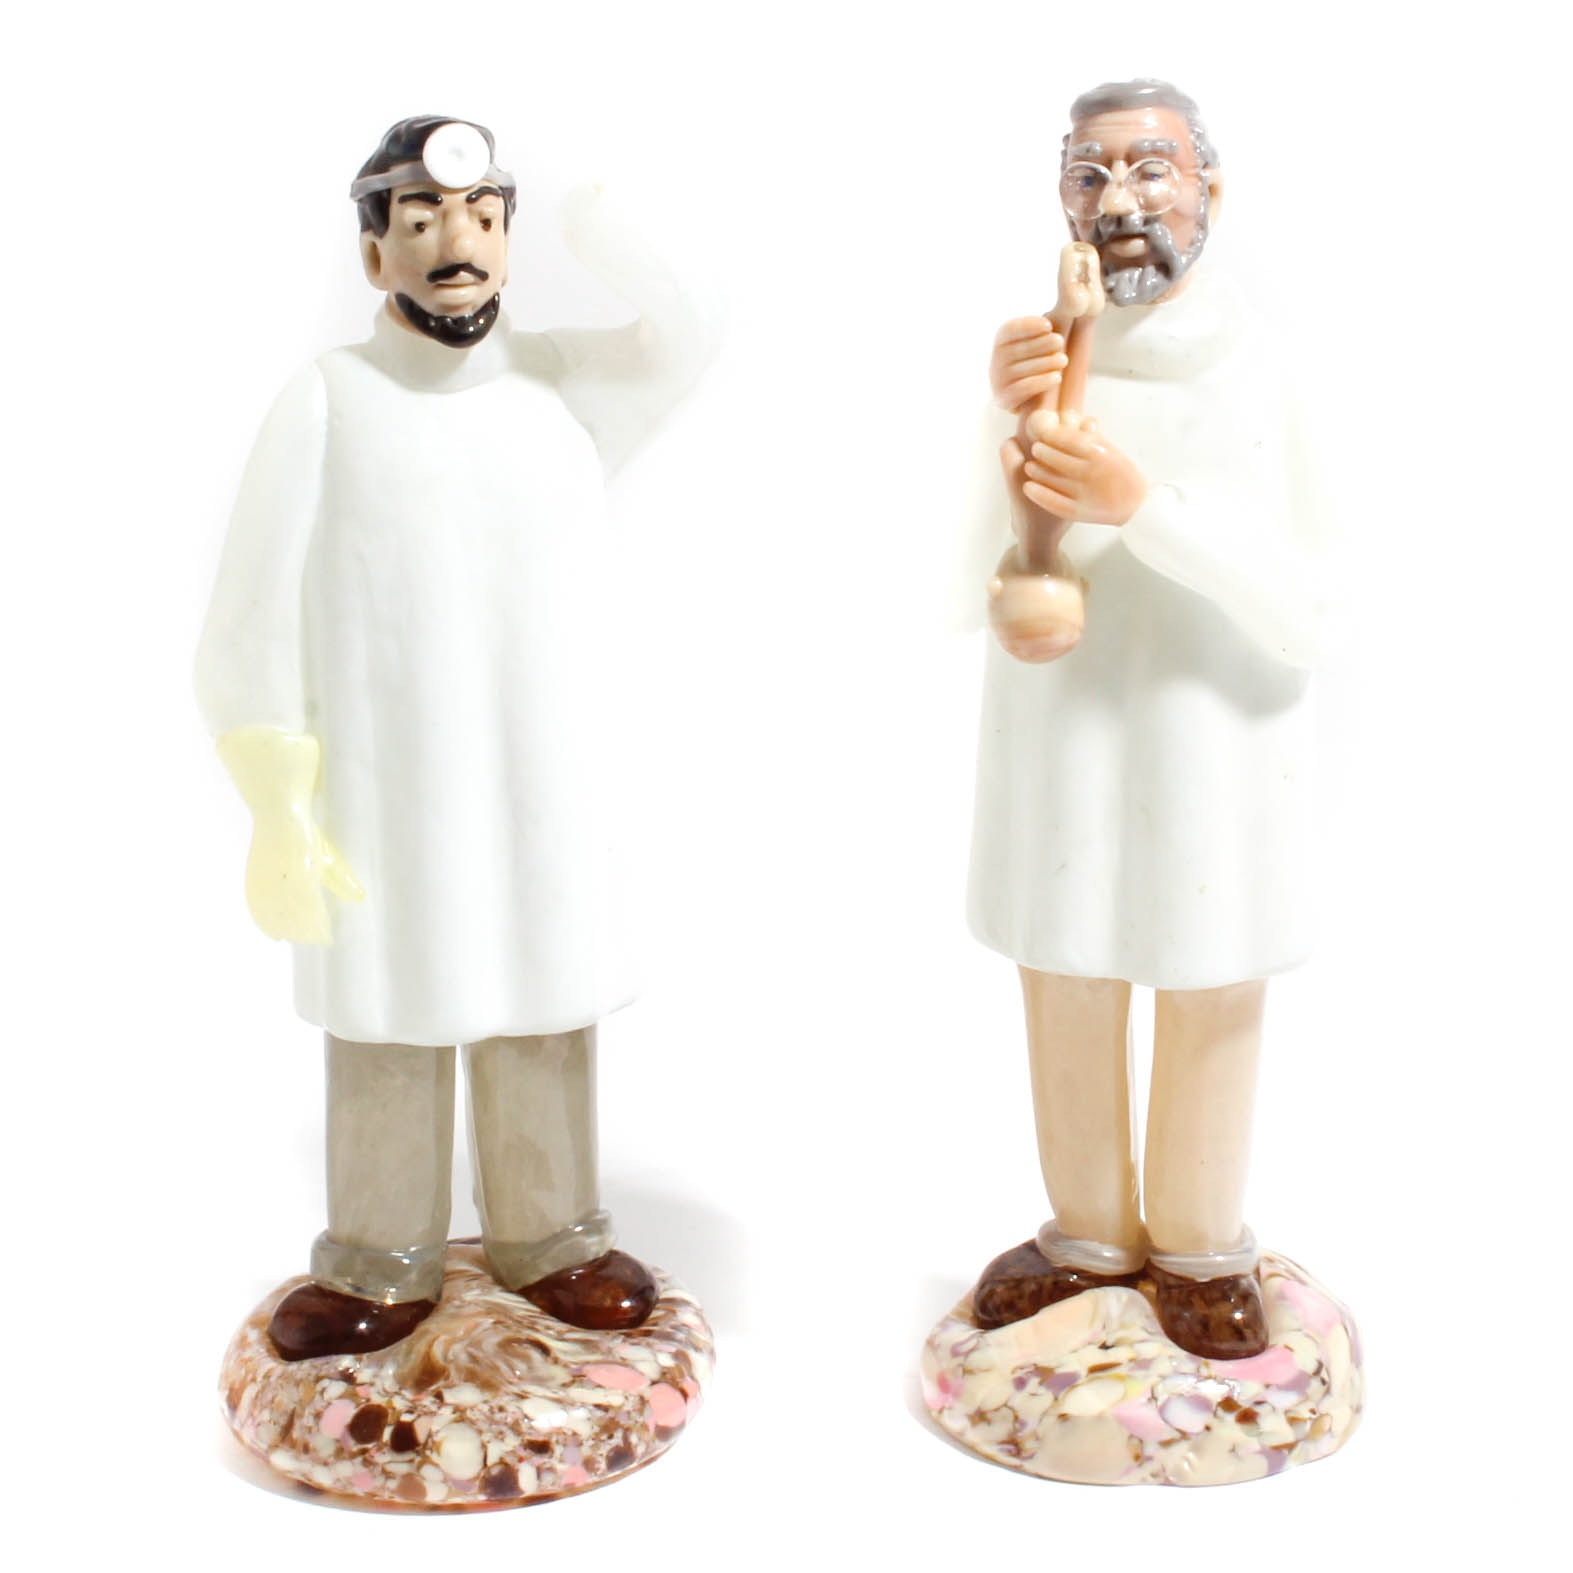 Bohemian Hand Cut Doctor Crystal Figurines from Czechoslovakia